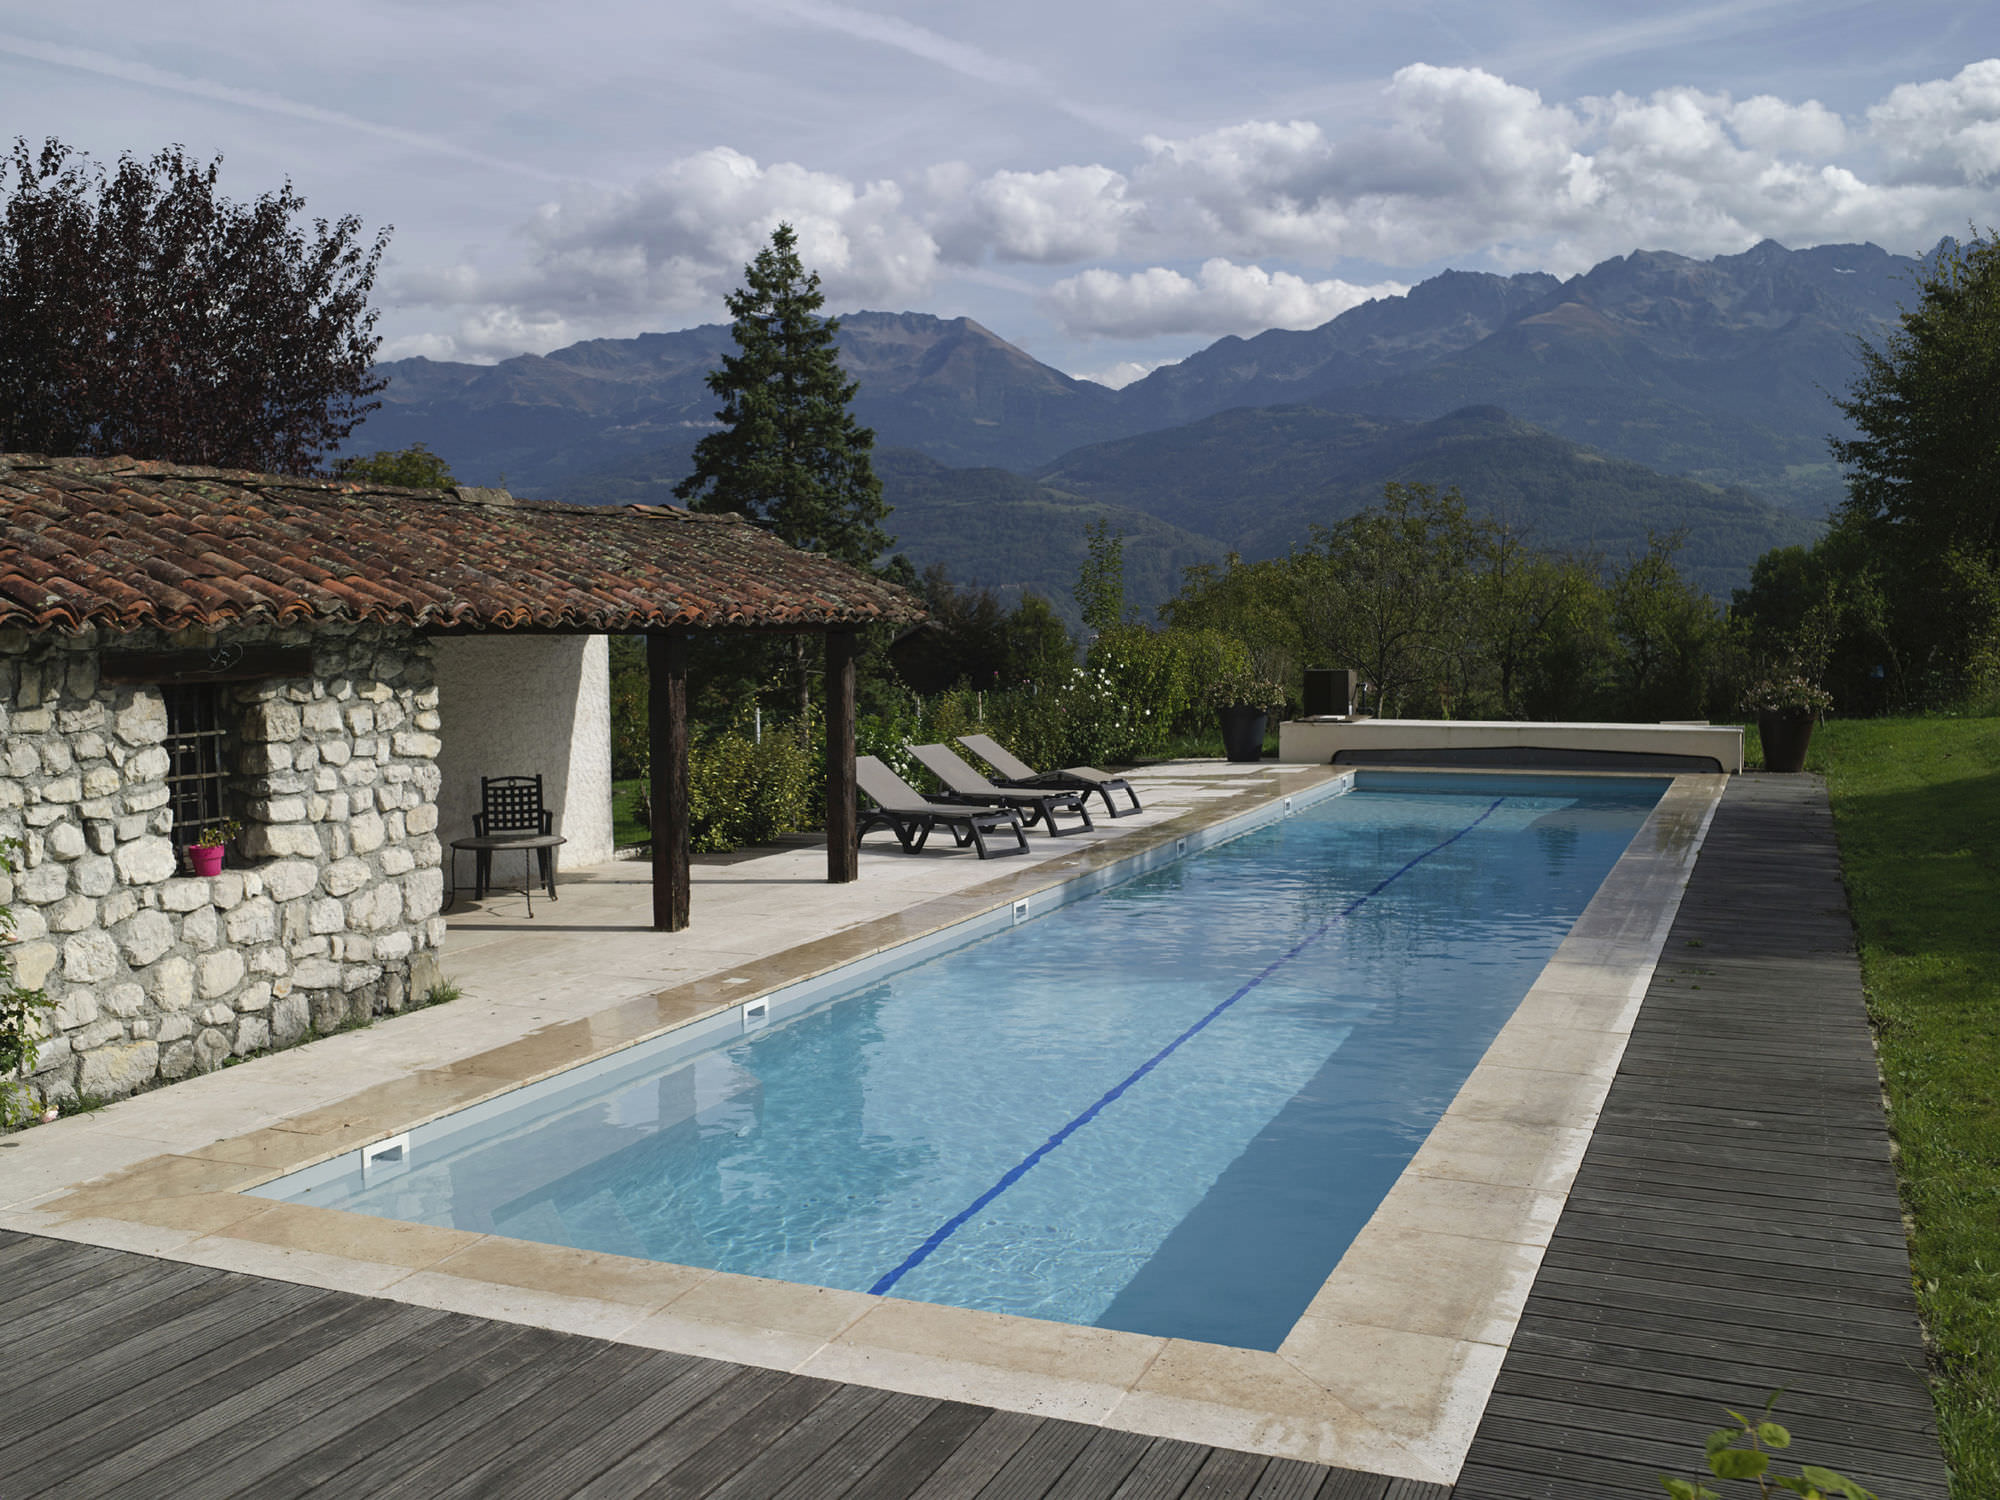 Inground concrete swimming pool (lap pool) - PISCINES CARRE BLEU